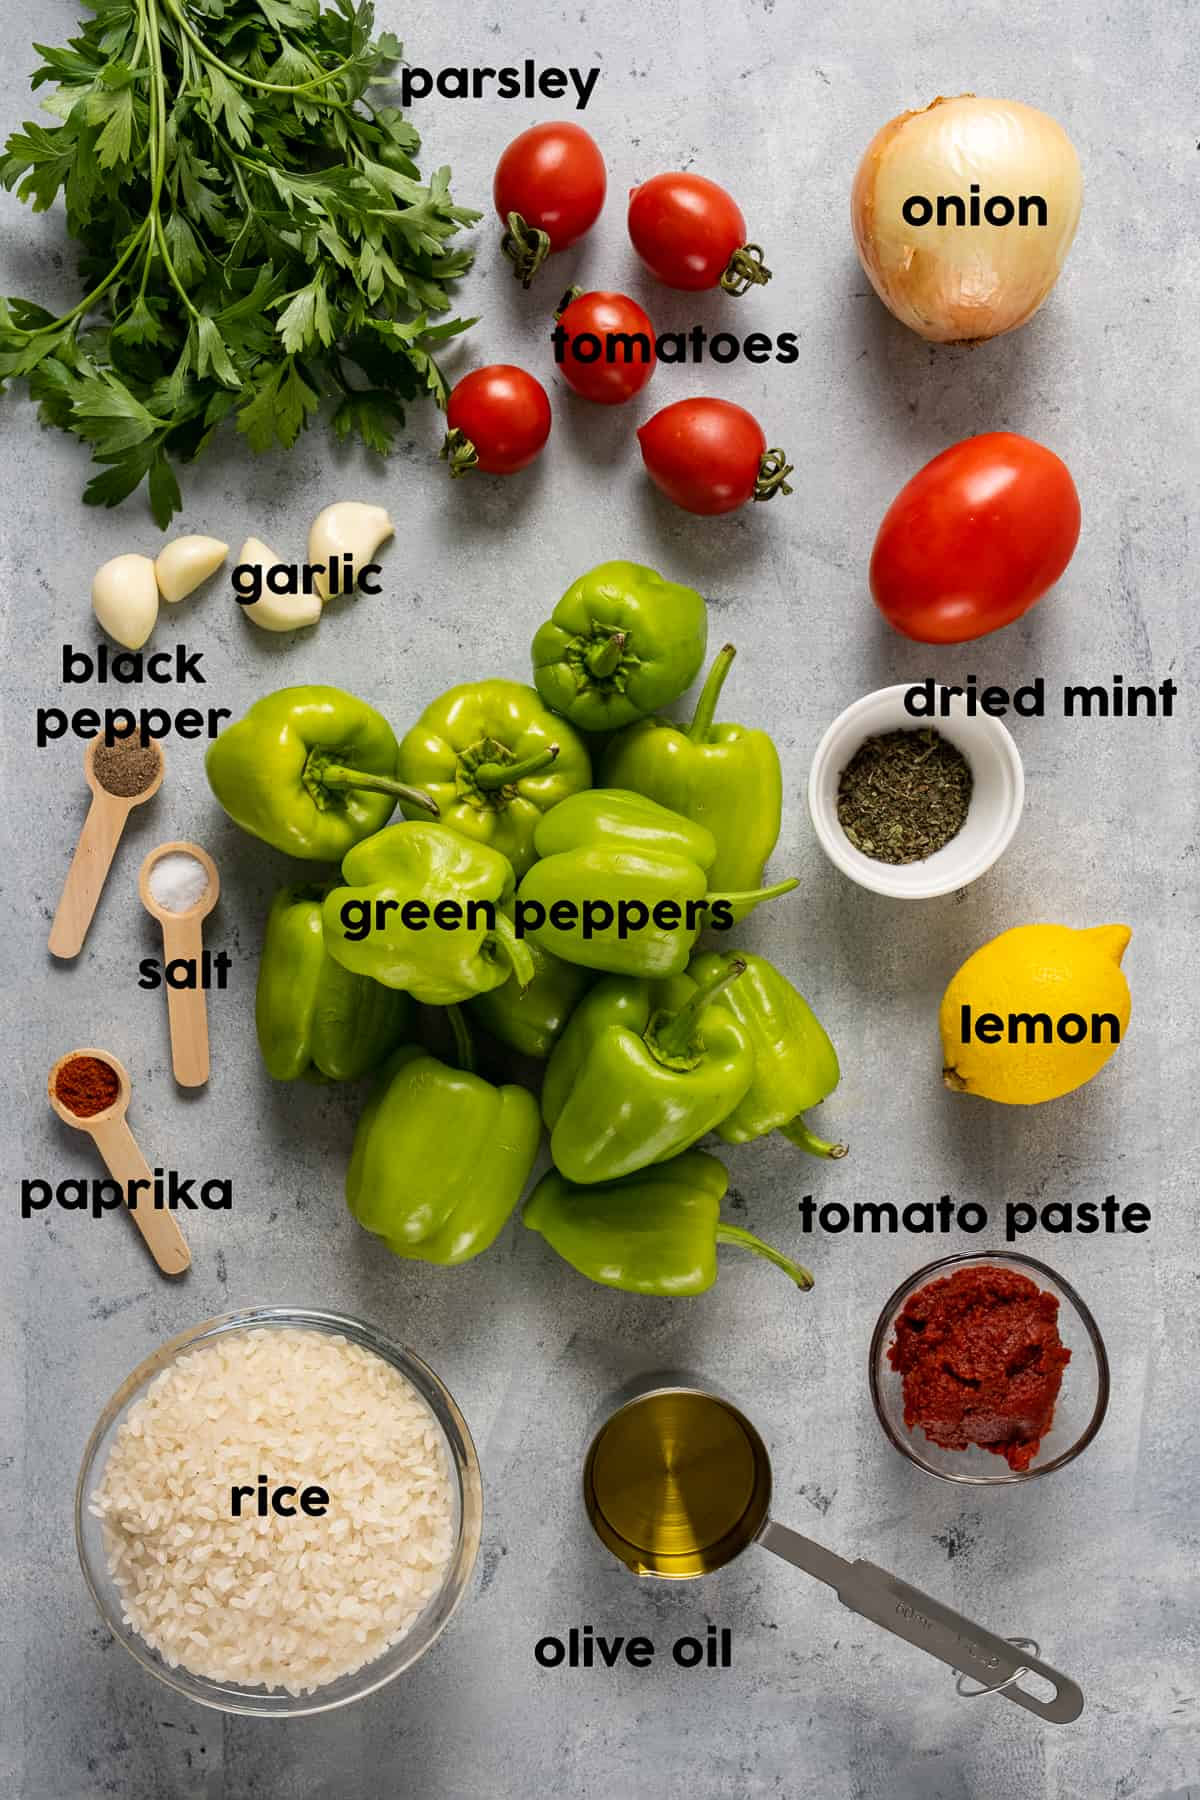 Turkish peppers, tomatoes, garlic, parsley, tomato paste, rice, spices, lemon, onion and olive oil on a light background.